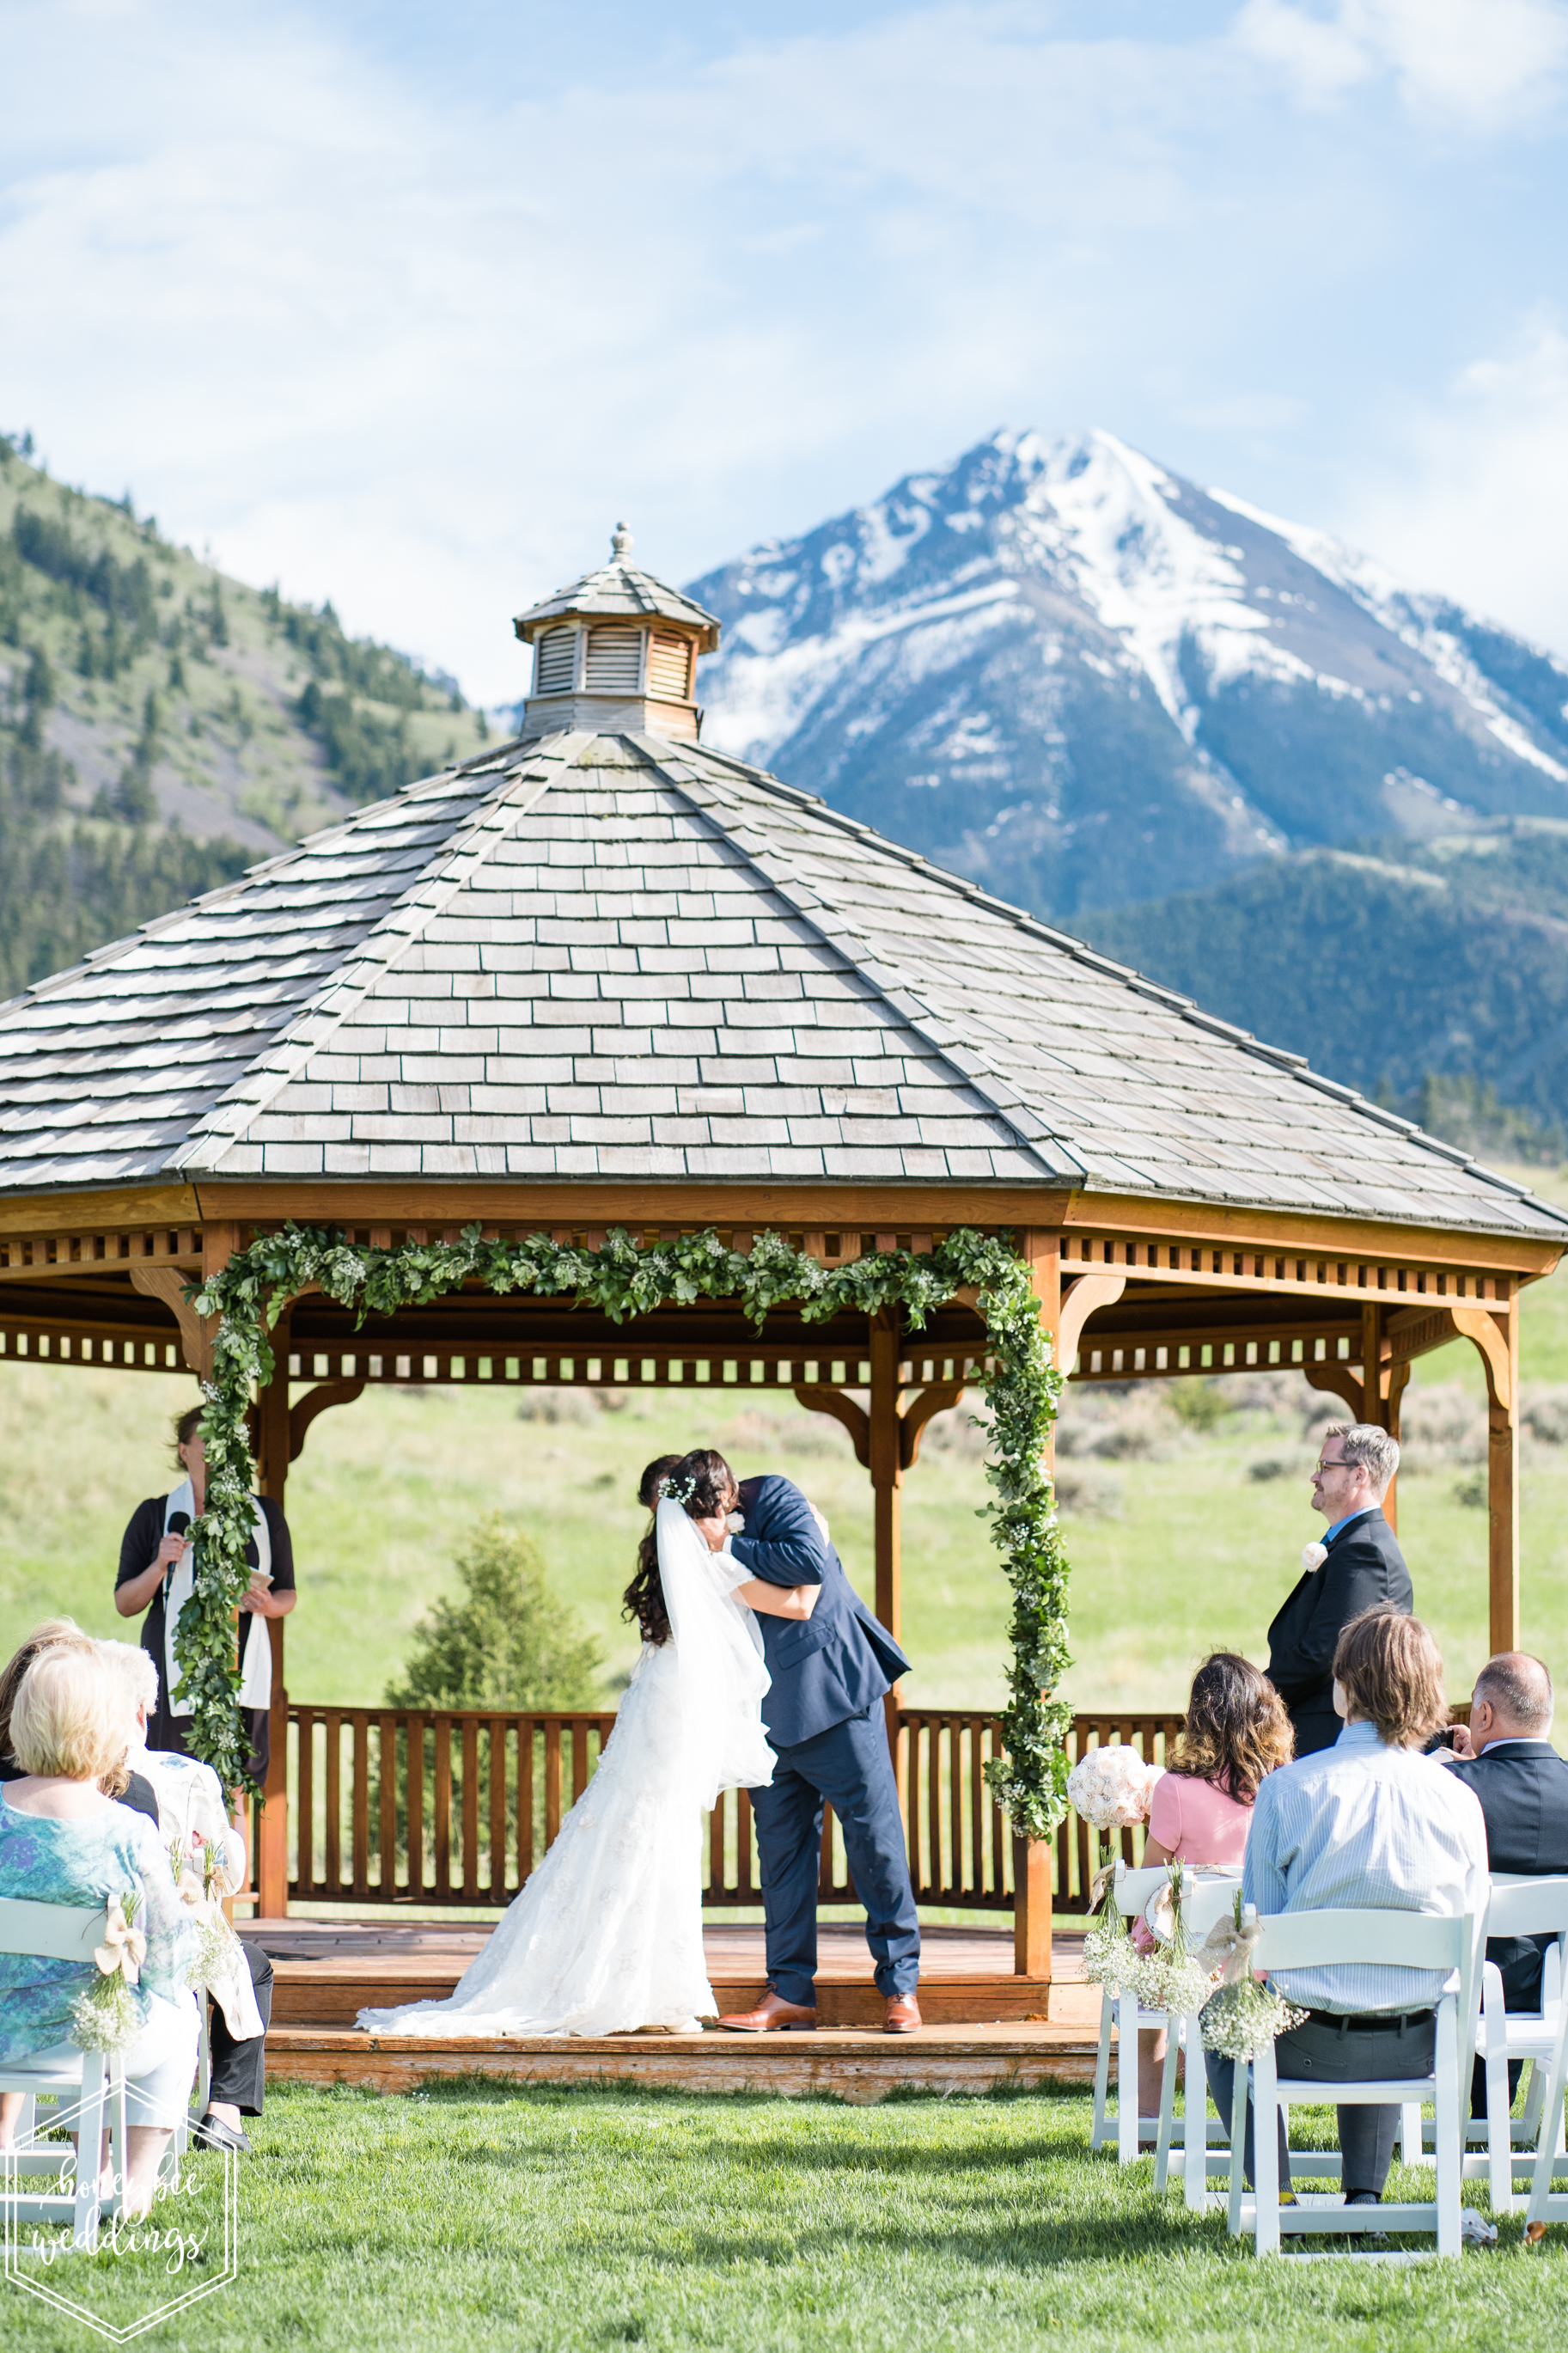 035Montana wedding photographer videographer_Chico hot springs wedding_Honeybee Weddings_Claudia & Bill_June 03, 2019-32.jpg